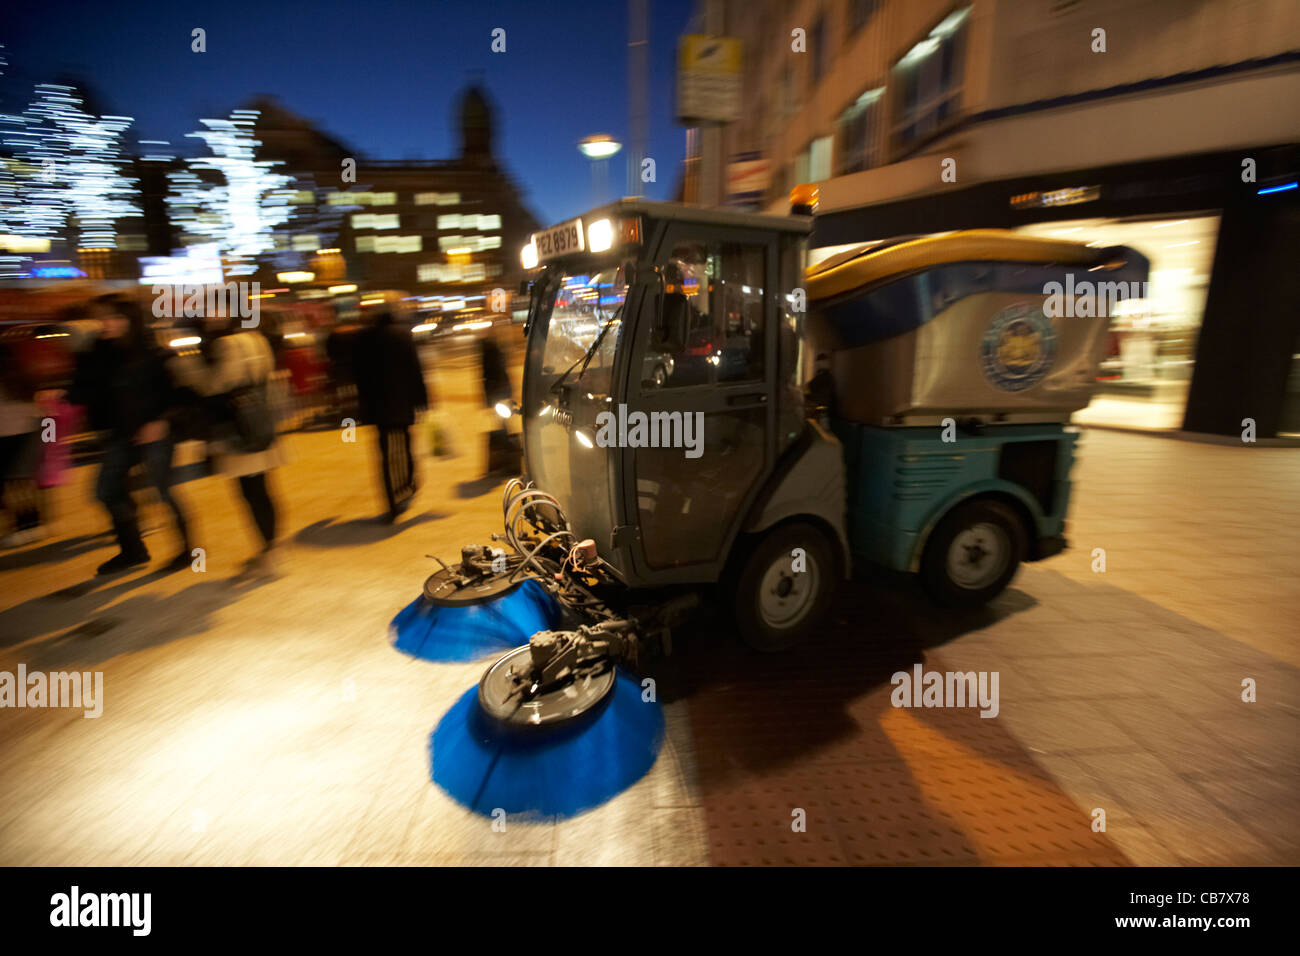 belfast city council street sweeper cleaning streets at night northern ireland uk deliberate panning motion blur - Stock Image